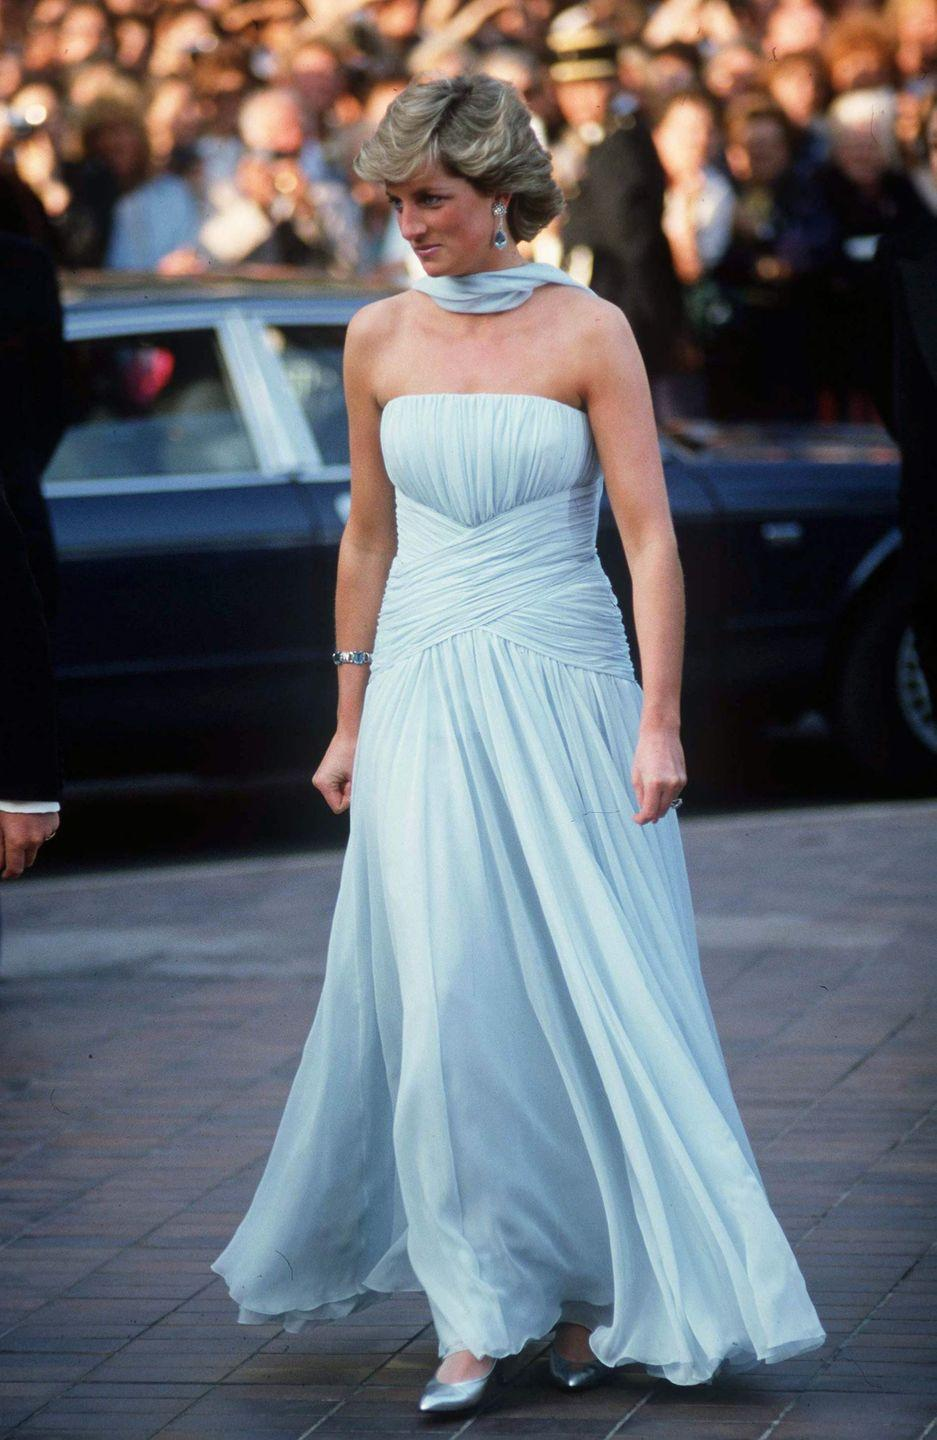 <p>One of Princess Diana's most iconic red carpet looks was the strapless chiffon Catherine Walker gown she wore to the Cannes Film Festival in 1987, which is reminiscent of Cinderella's famous dress. </p>